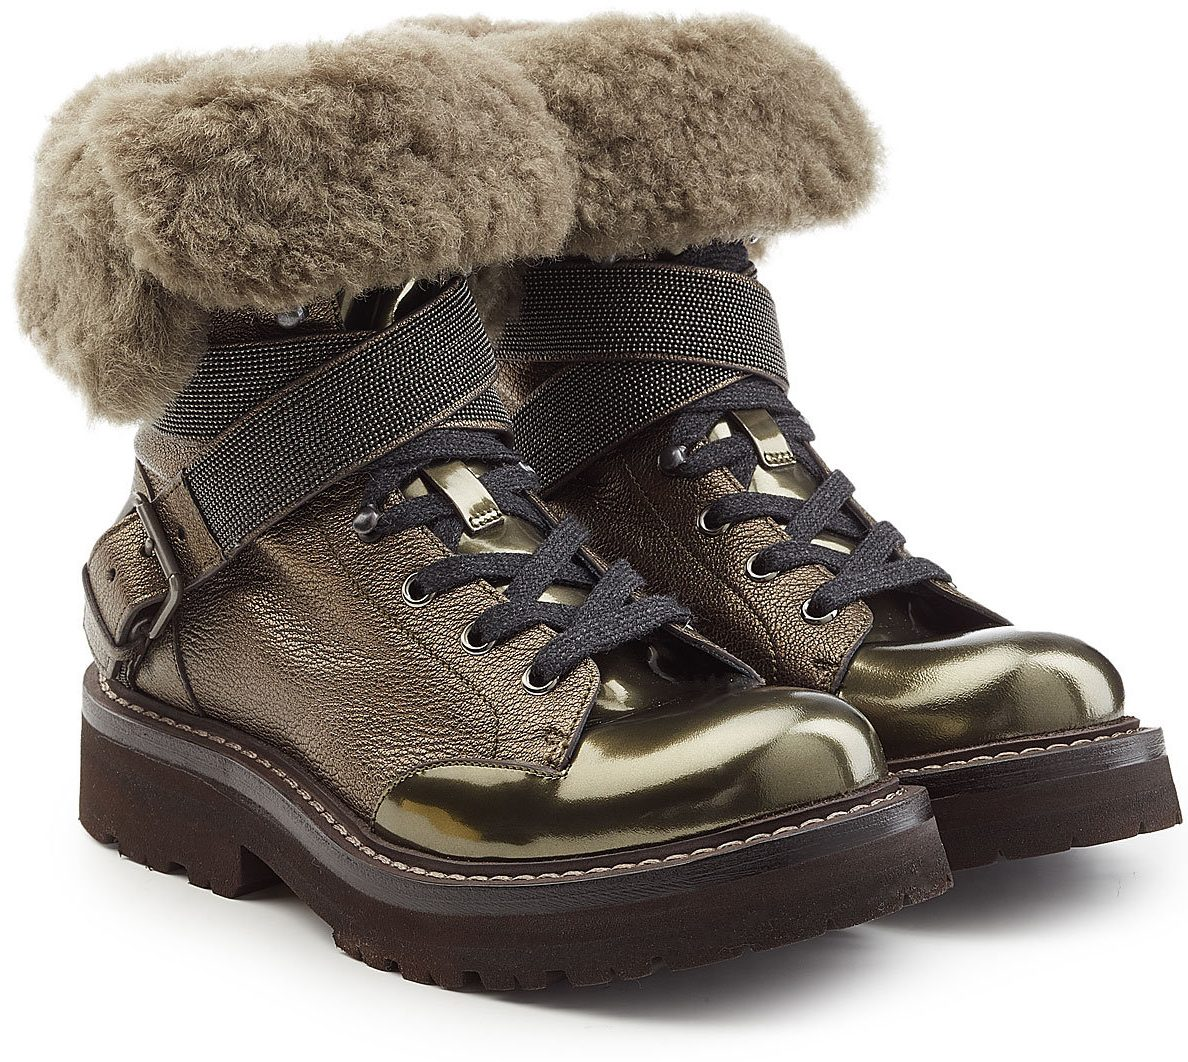 Brunello Cucinelli Embellished Shearling Boots with Metallic Leather